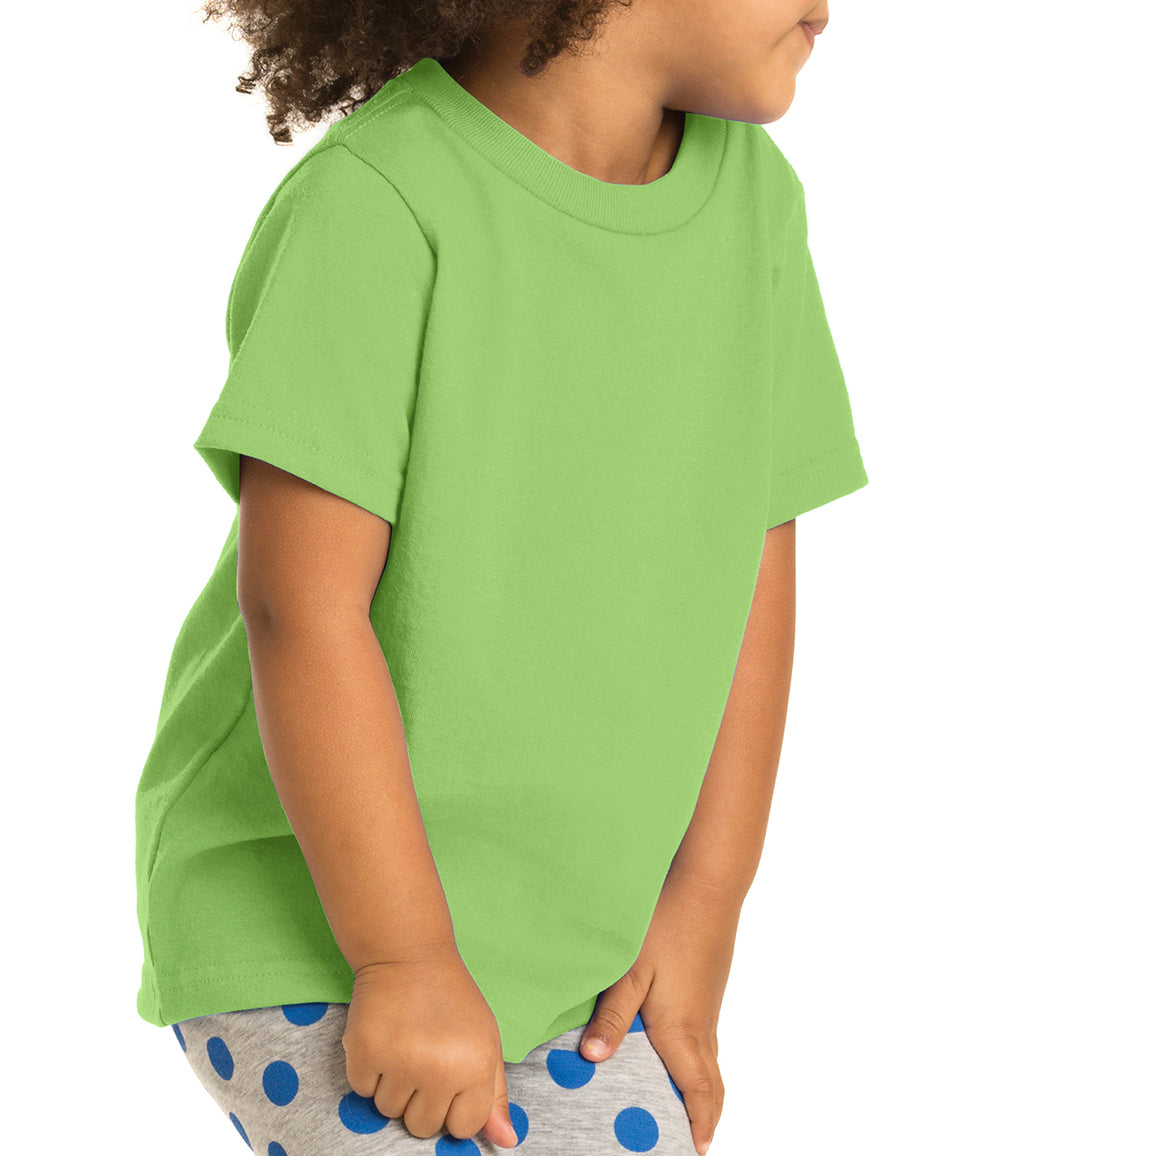 Toddler Core Cotton Tee - Lime